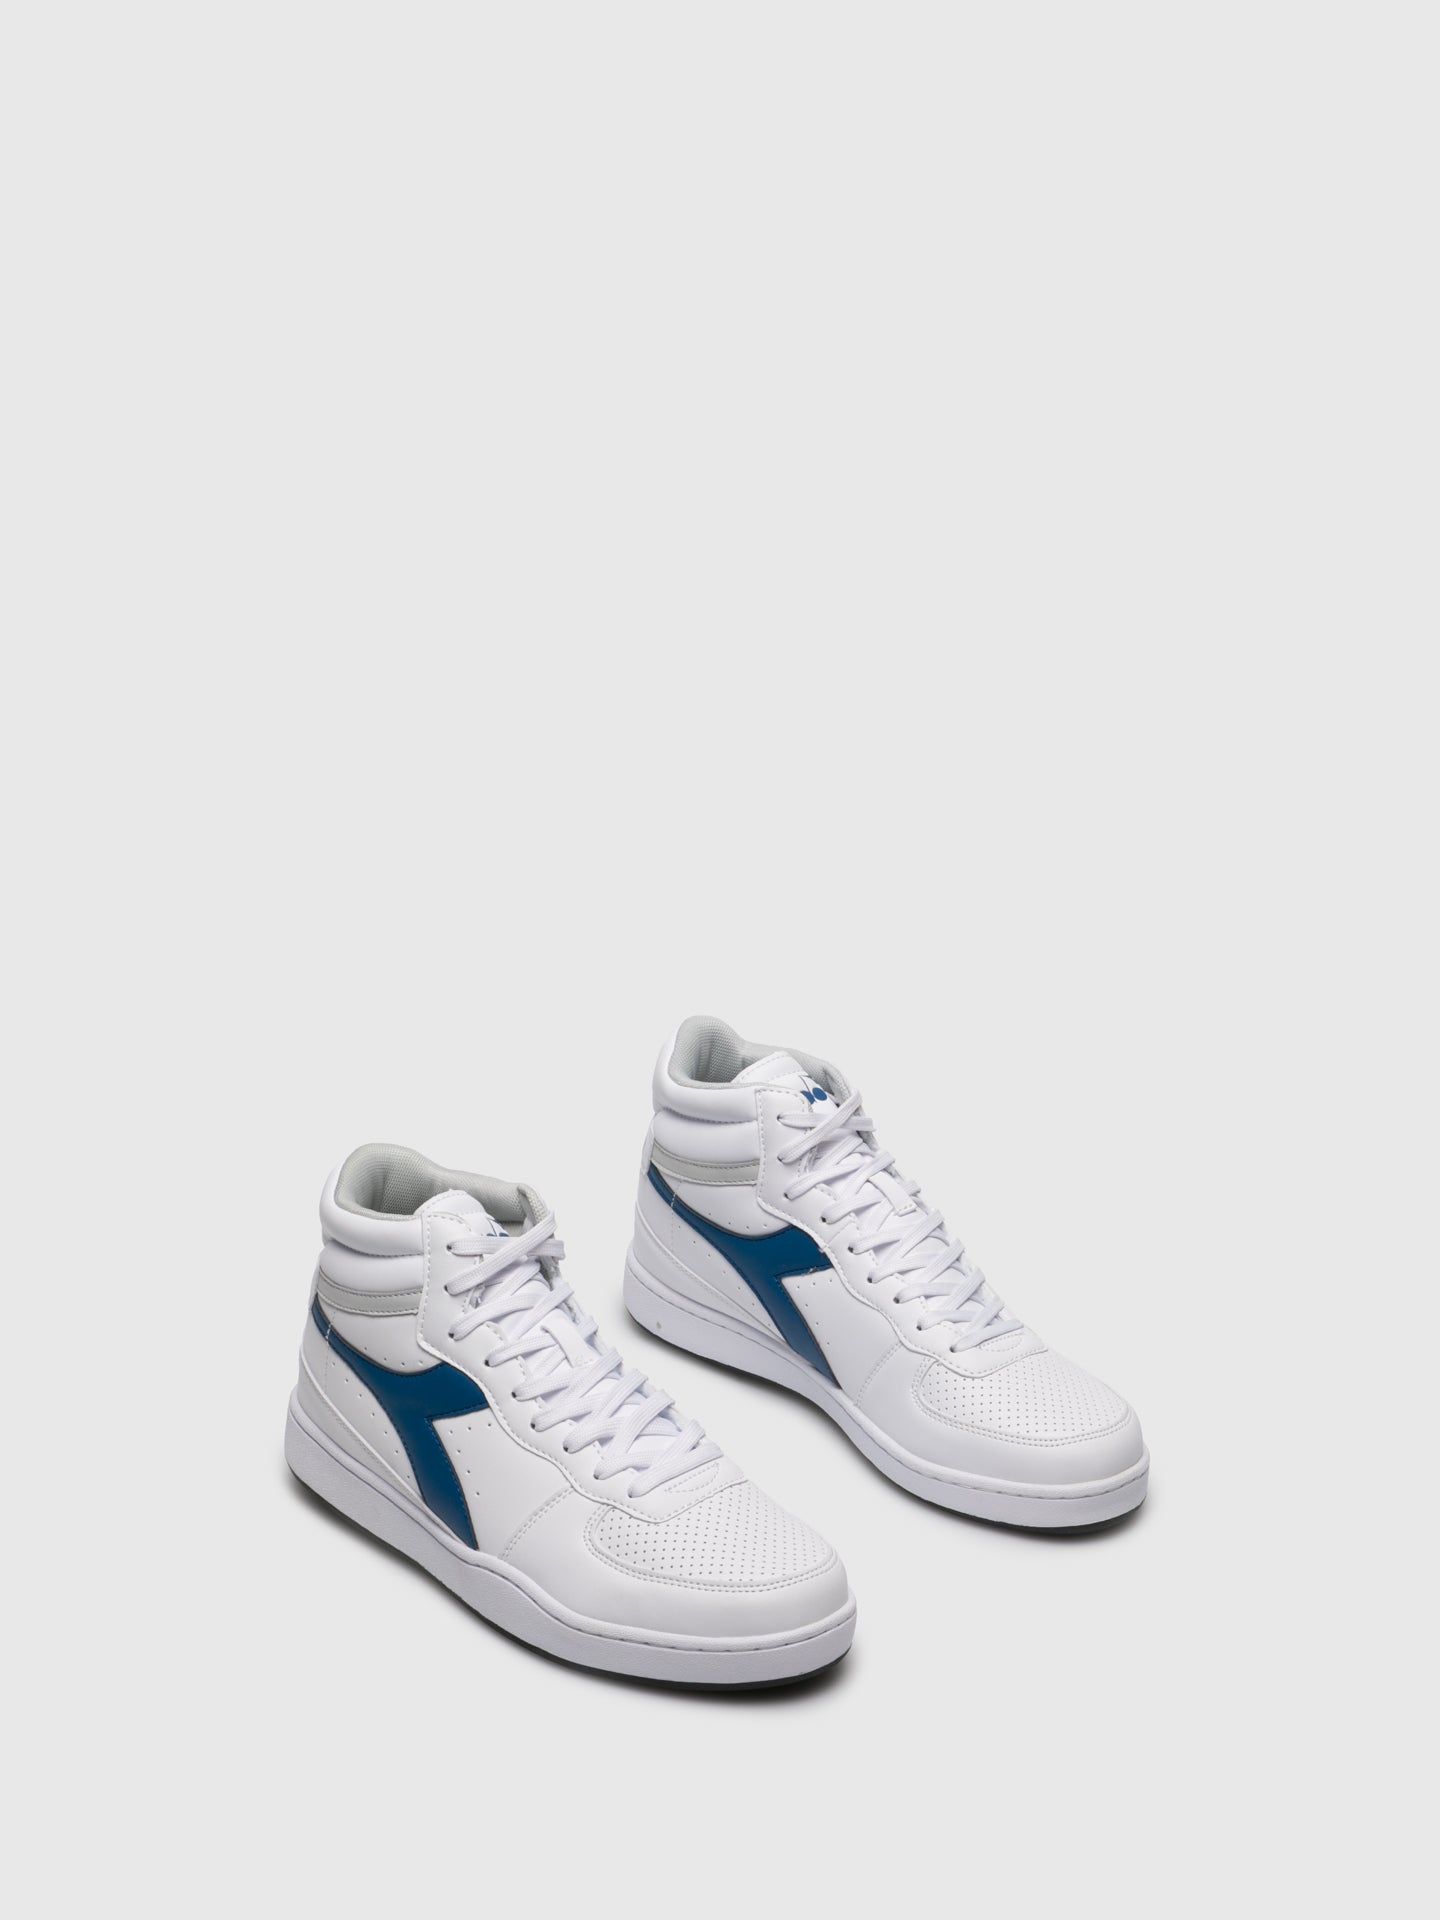 Diadora Blue White Hi-Top Trainers